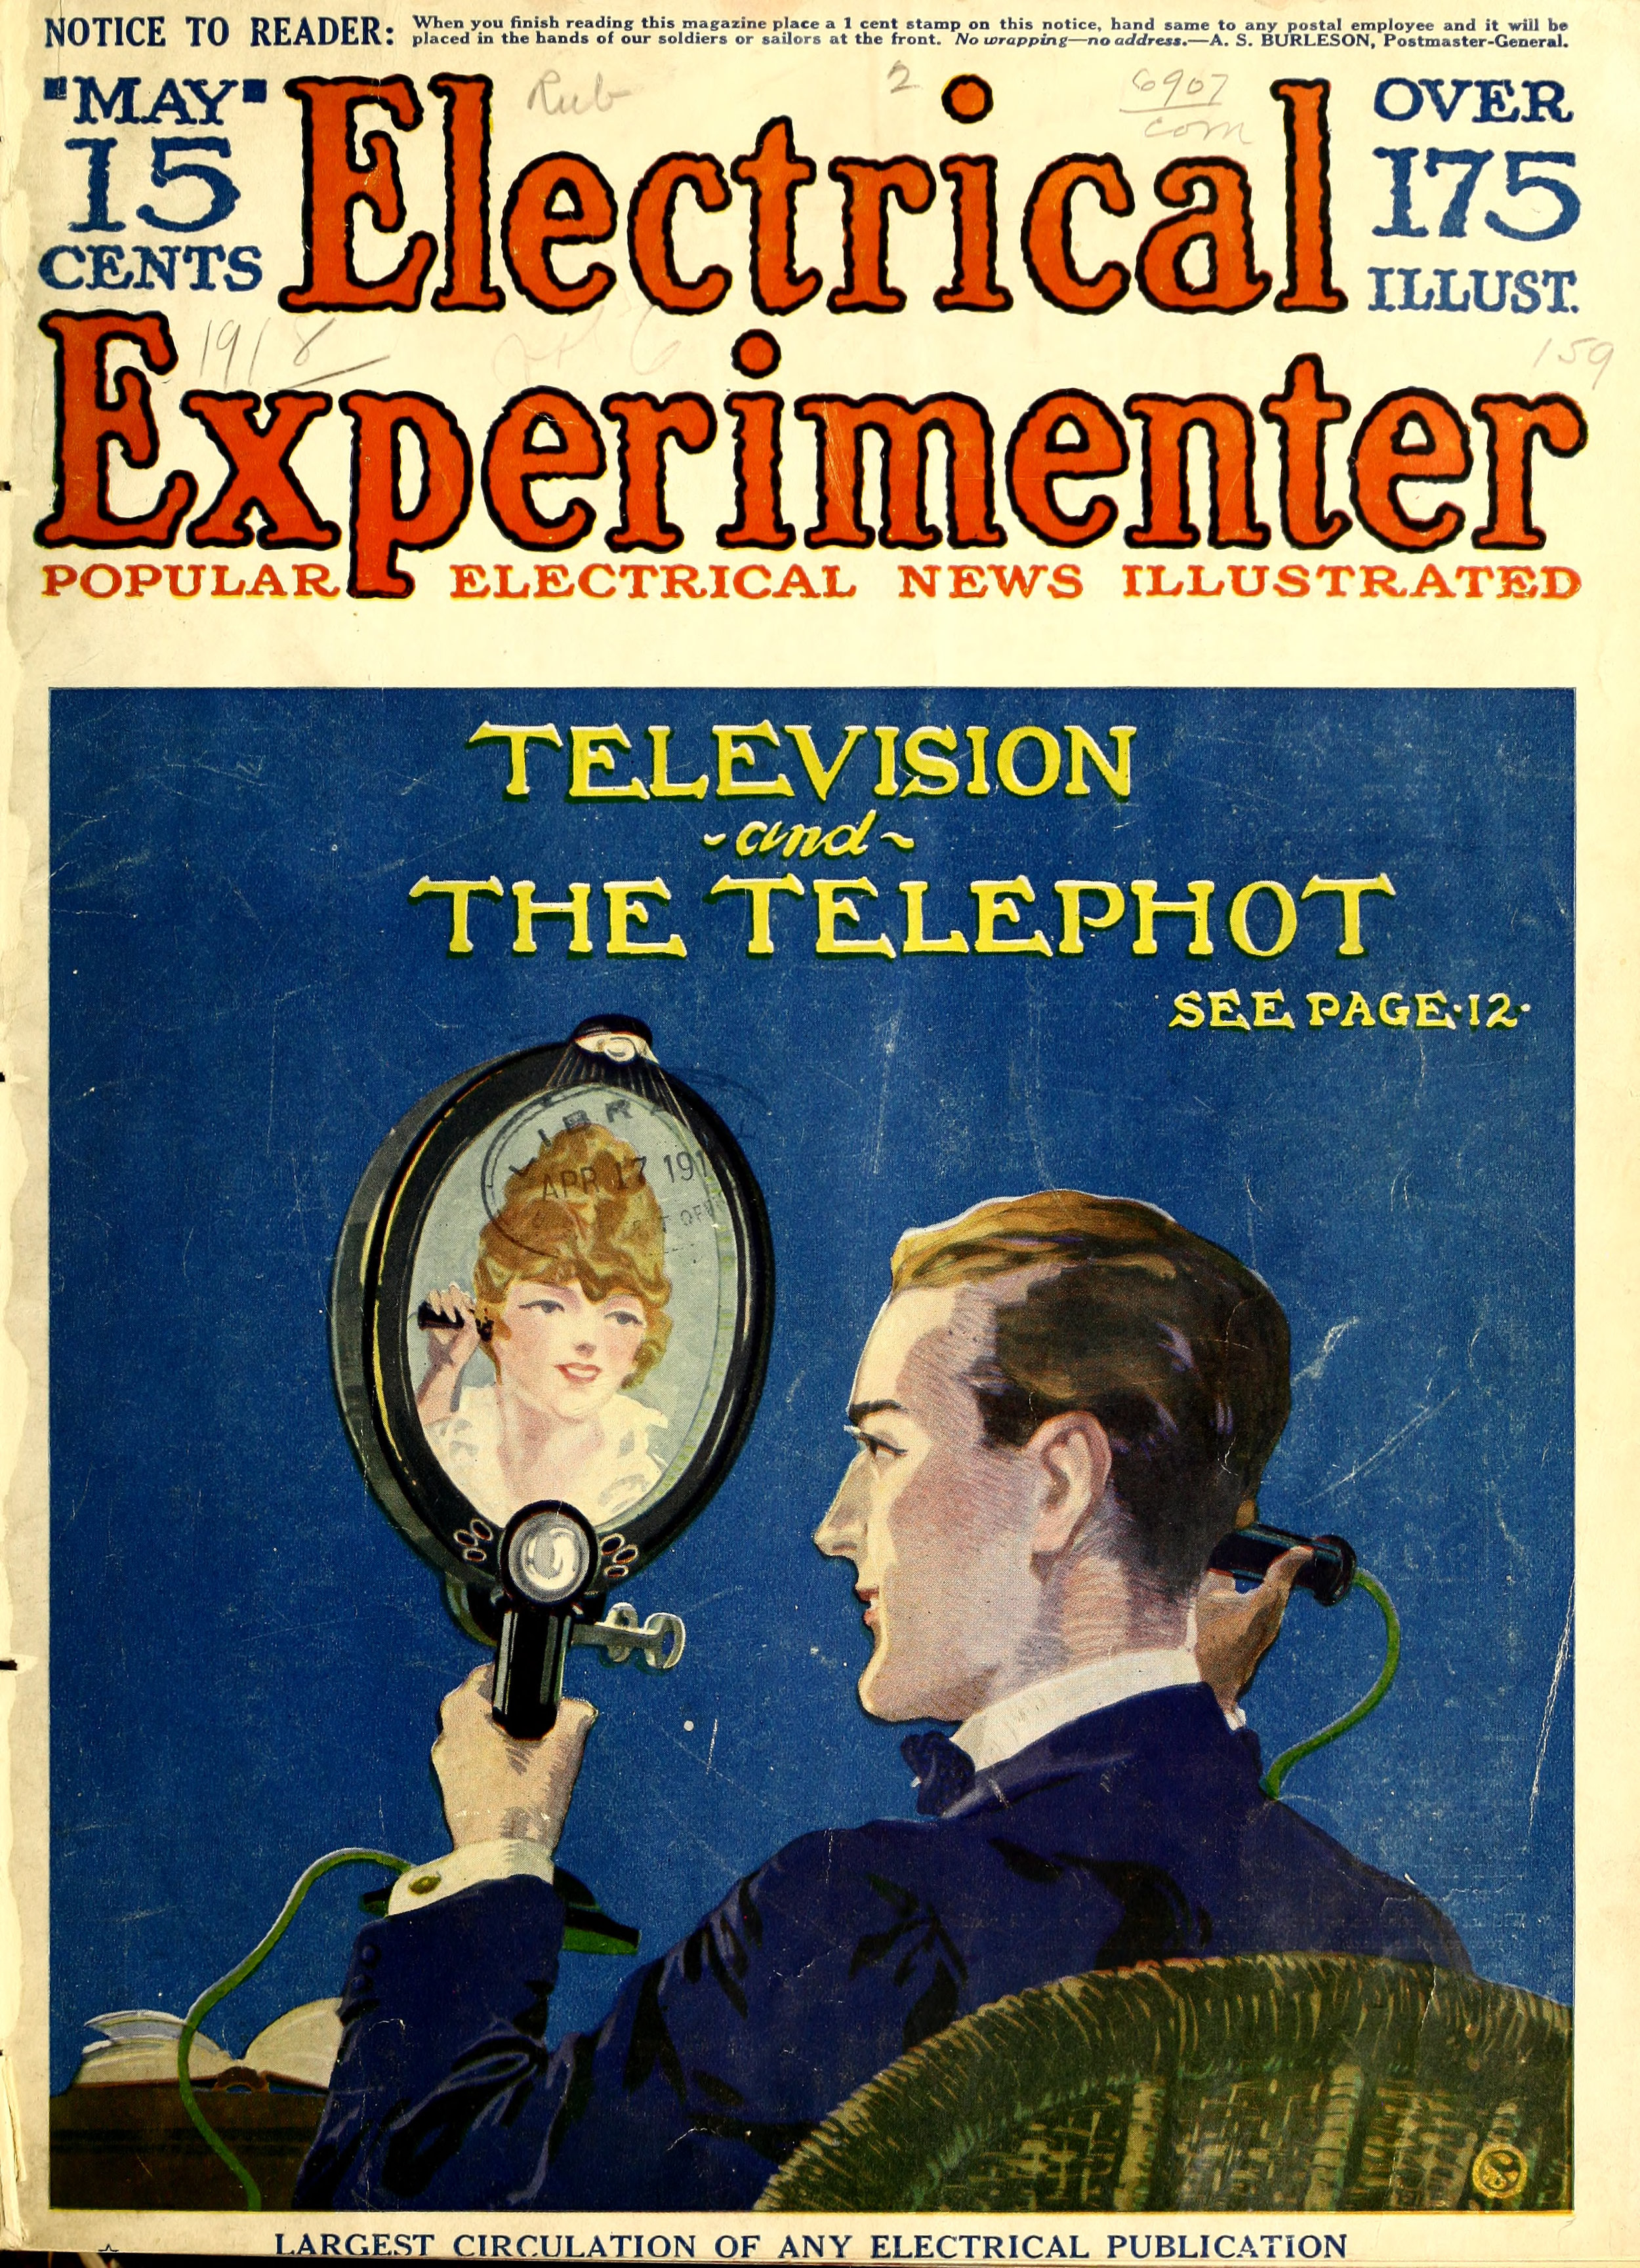 1908 Electrical_Experimenter_May1918_01_TV_Cover.jpg